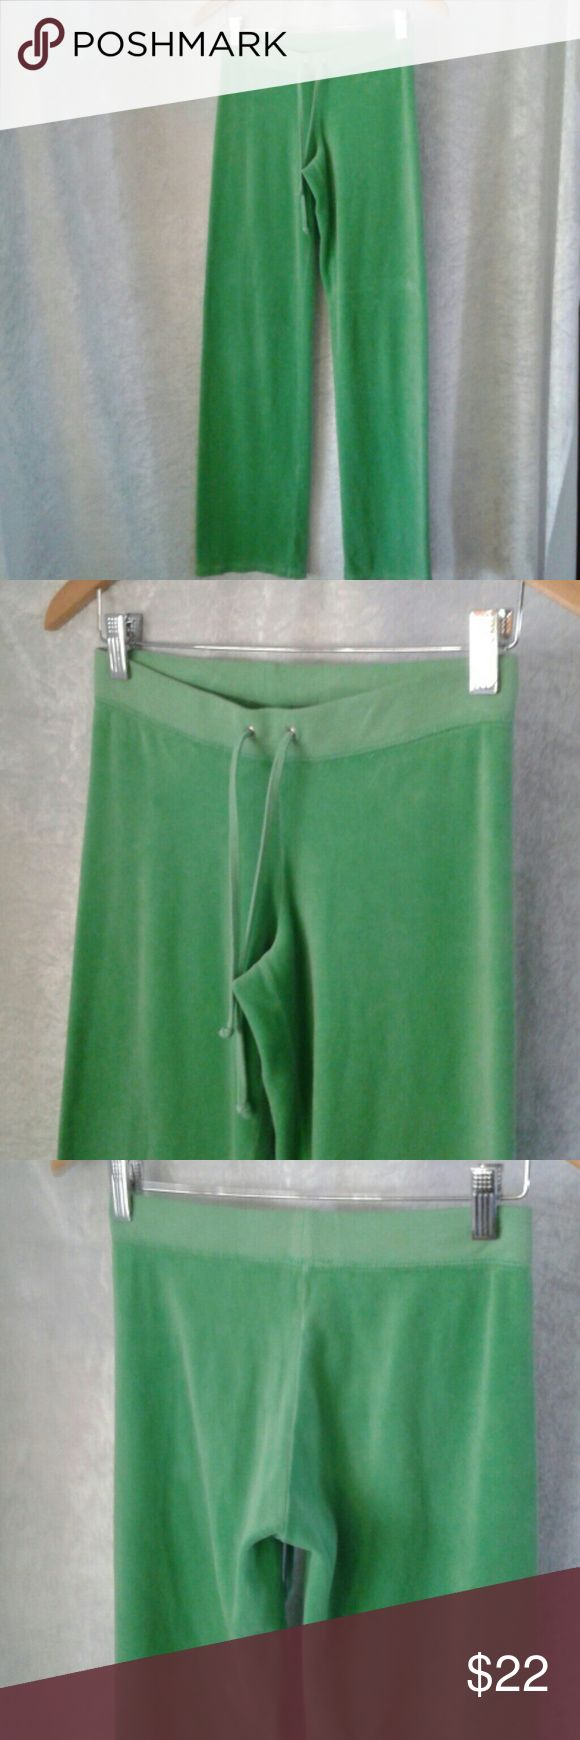 "Sale!Juicy Couture velour pants in lime green Lime green velour pants by Juicy Couture. Inseam measures 32"". Juicy Couture Pants Track Pants & Joggers"